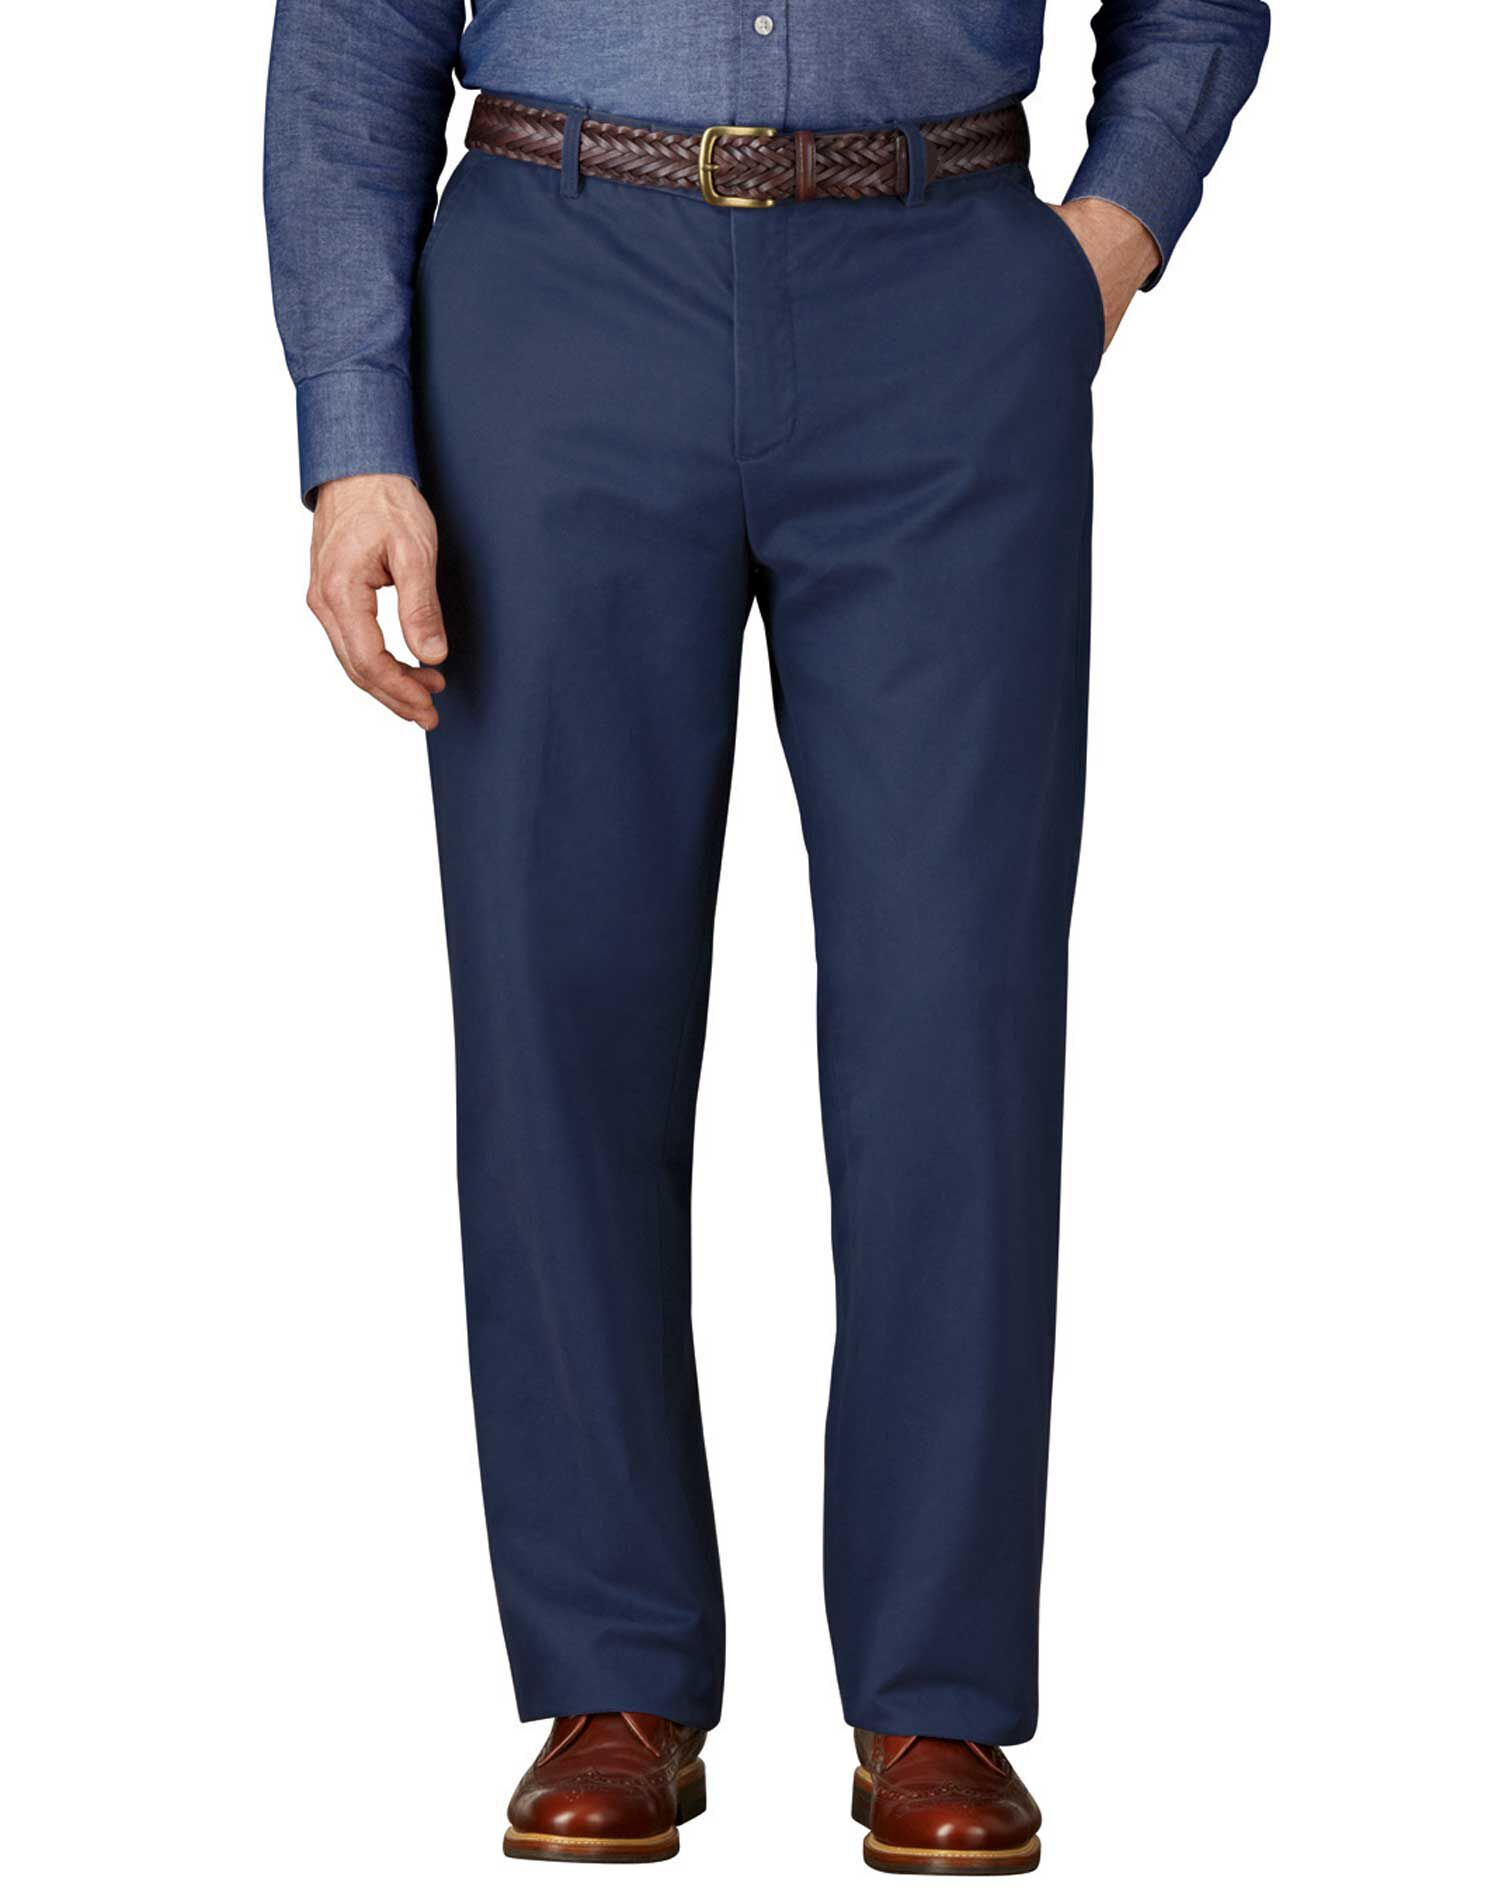 Blue Classic Fit Flat Front Weekend Cotton Chino Trousers Size W44 L38 by Charles Tyrwhitt